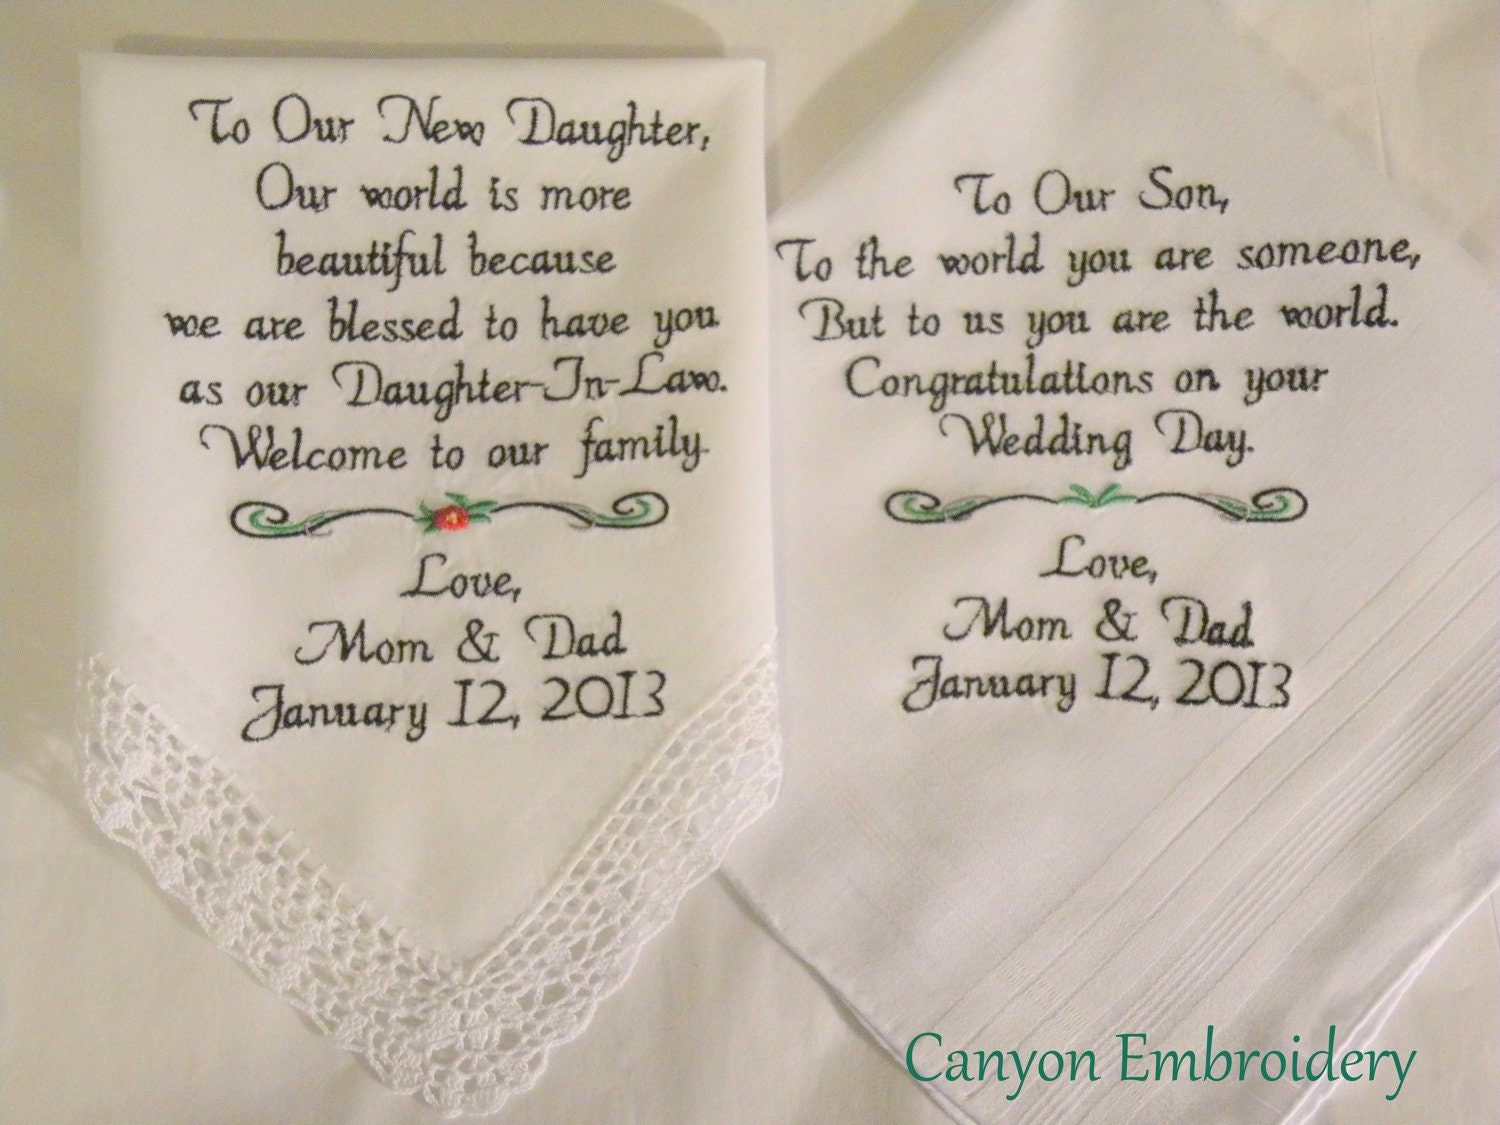 Wedding Gift Ideas For Mom: New Daughter Son Wedding Gift From Mom And Dad By